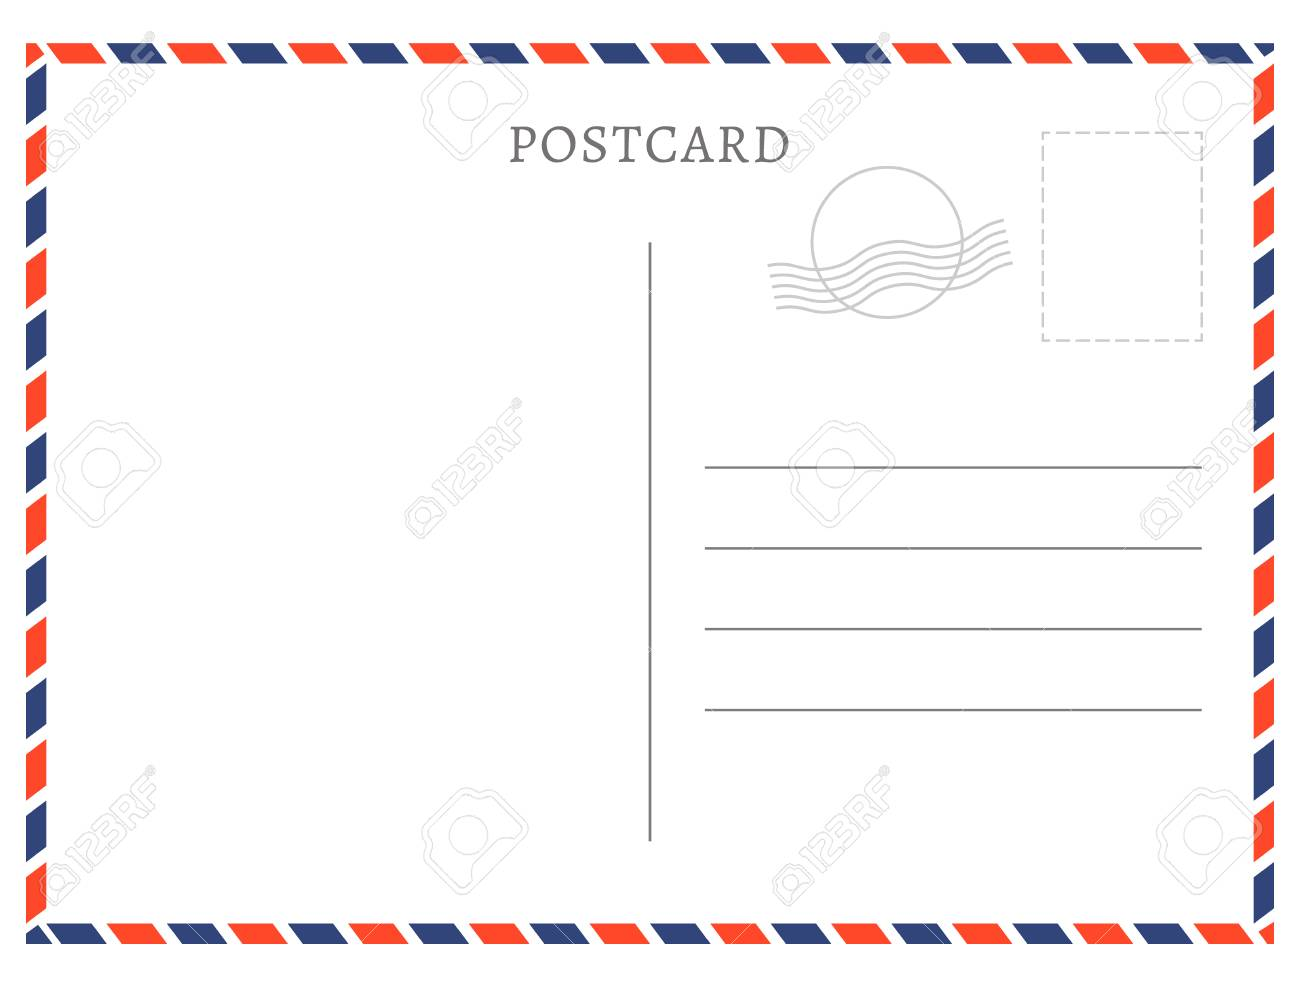 Post Card Template | Postcard Template Paper White Texture Vector Postcard Empty